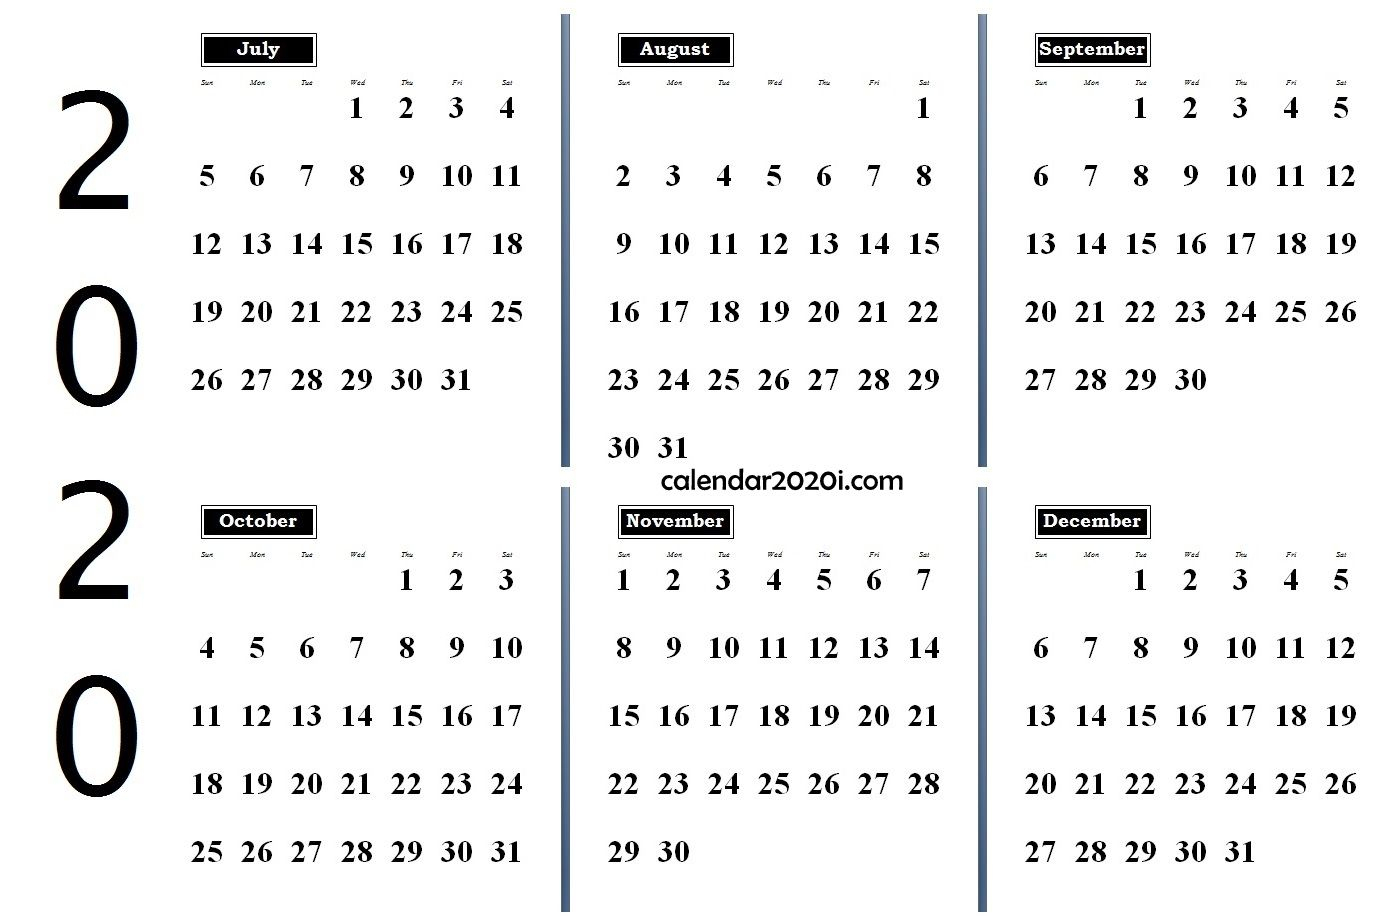 2020 6 Months Calendar From July To December | 2020